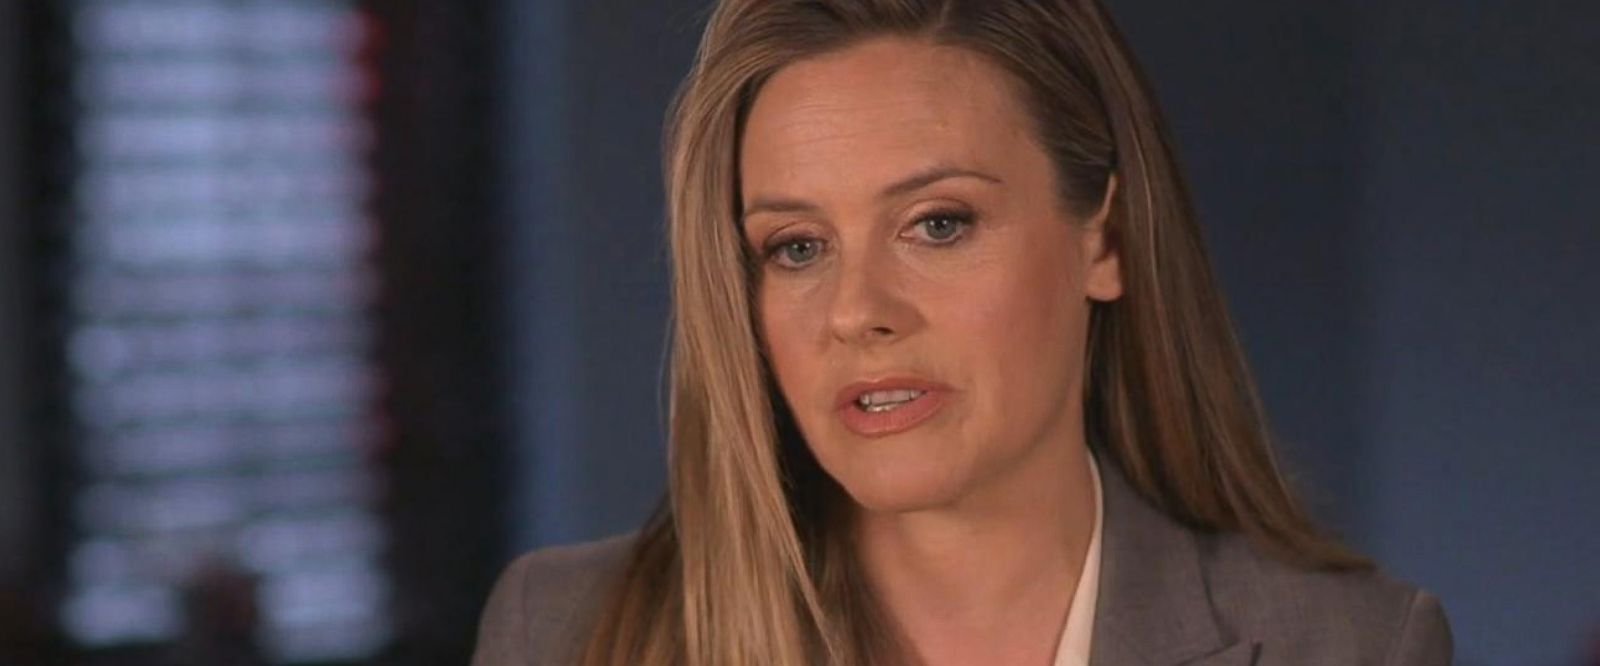 VIDEO: Alicia Silverstone remembers 'Clueless' co-star Brittany Murphy's audition